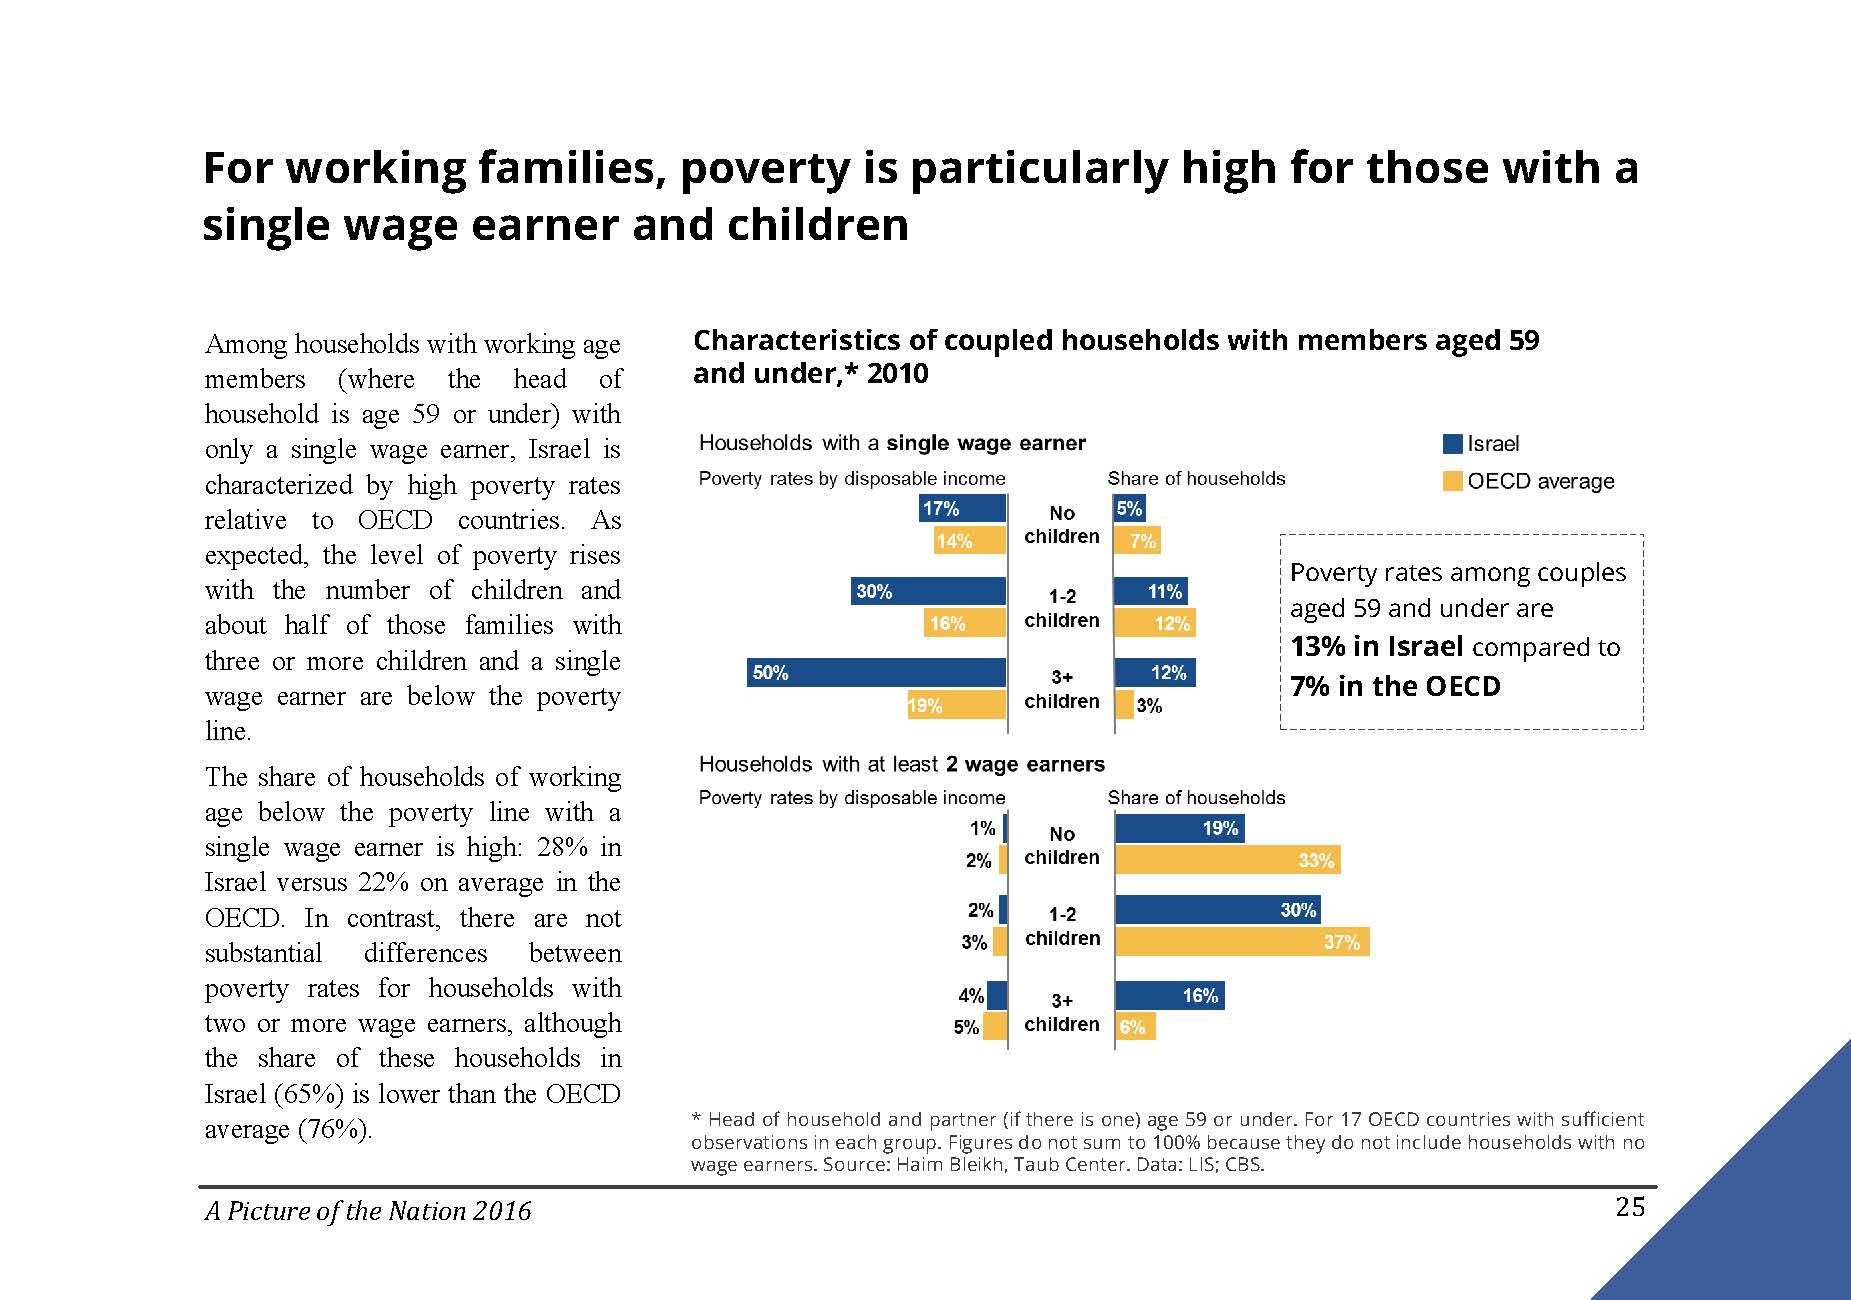 For working families in Israel poverty is particularly high for those with a single wage earner and children